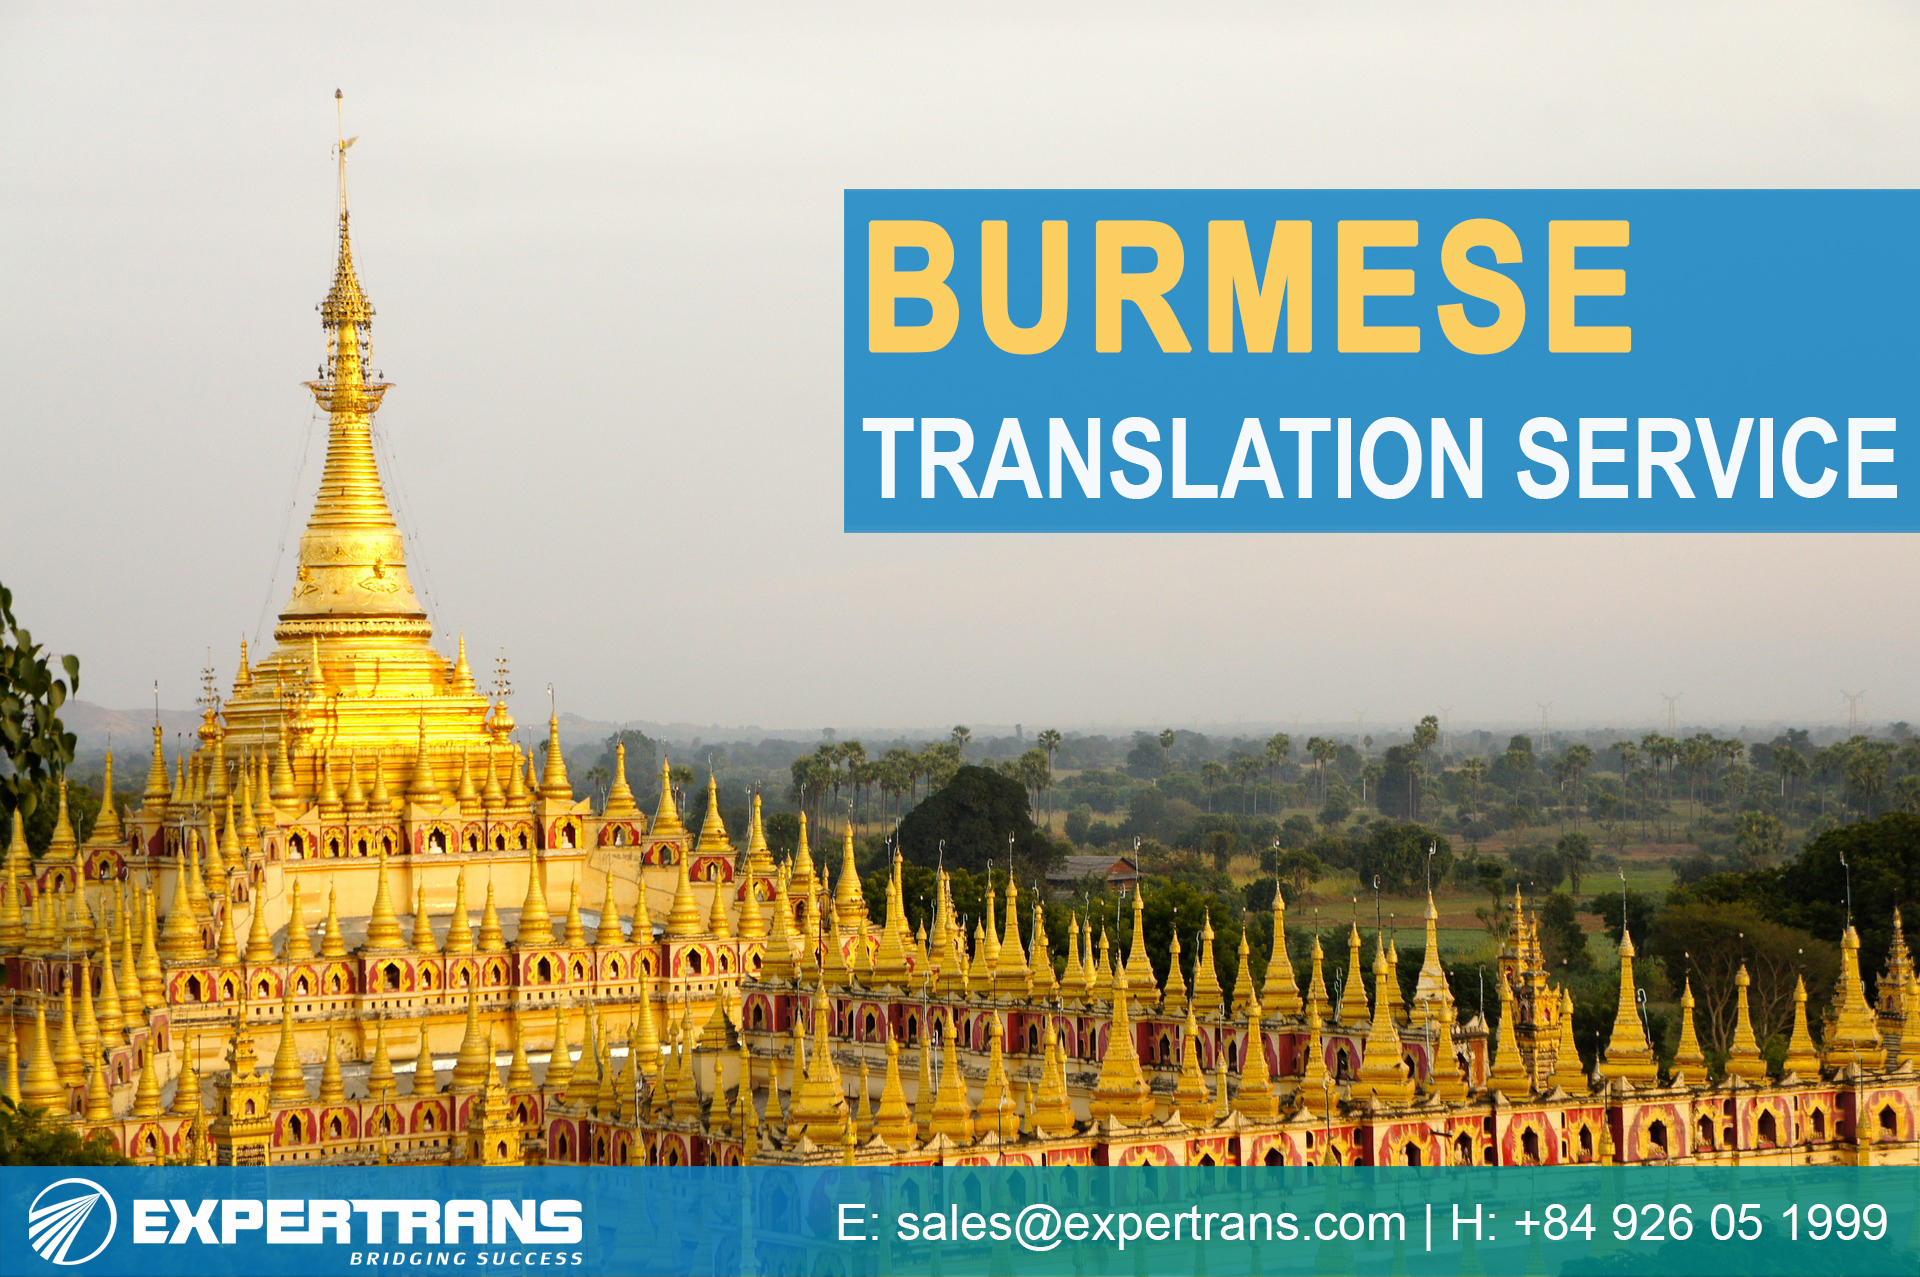 Burmese Translation Service